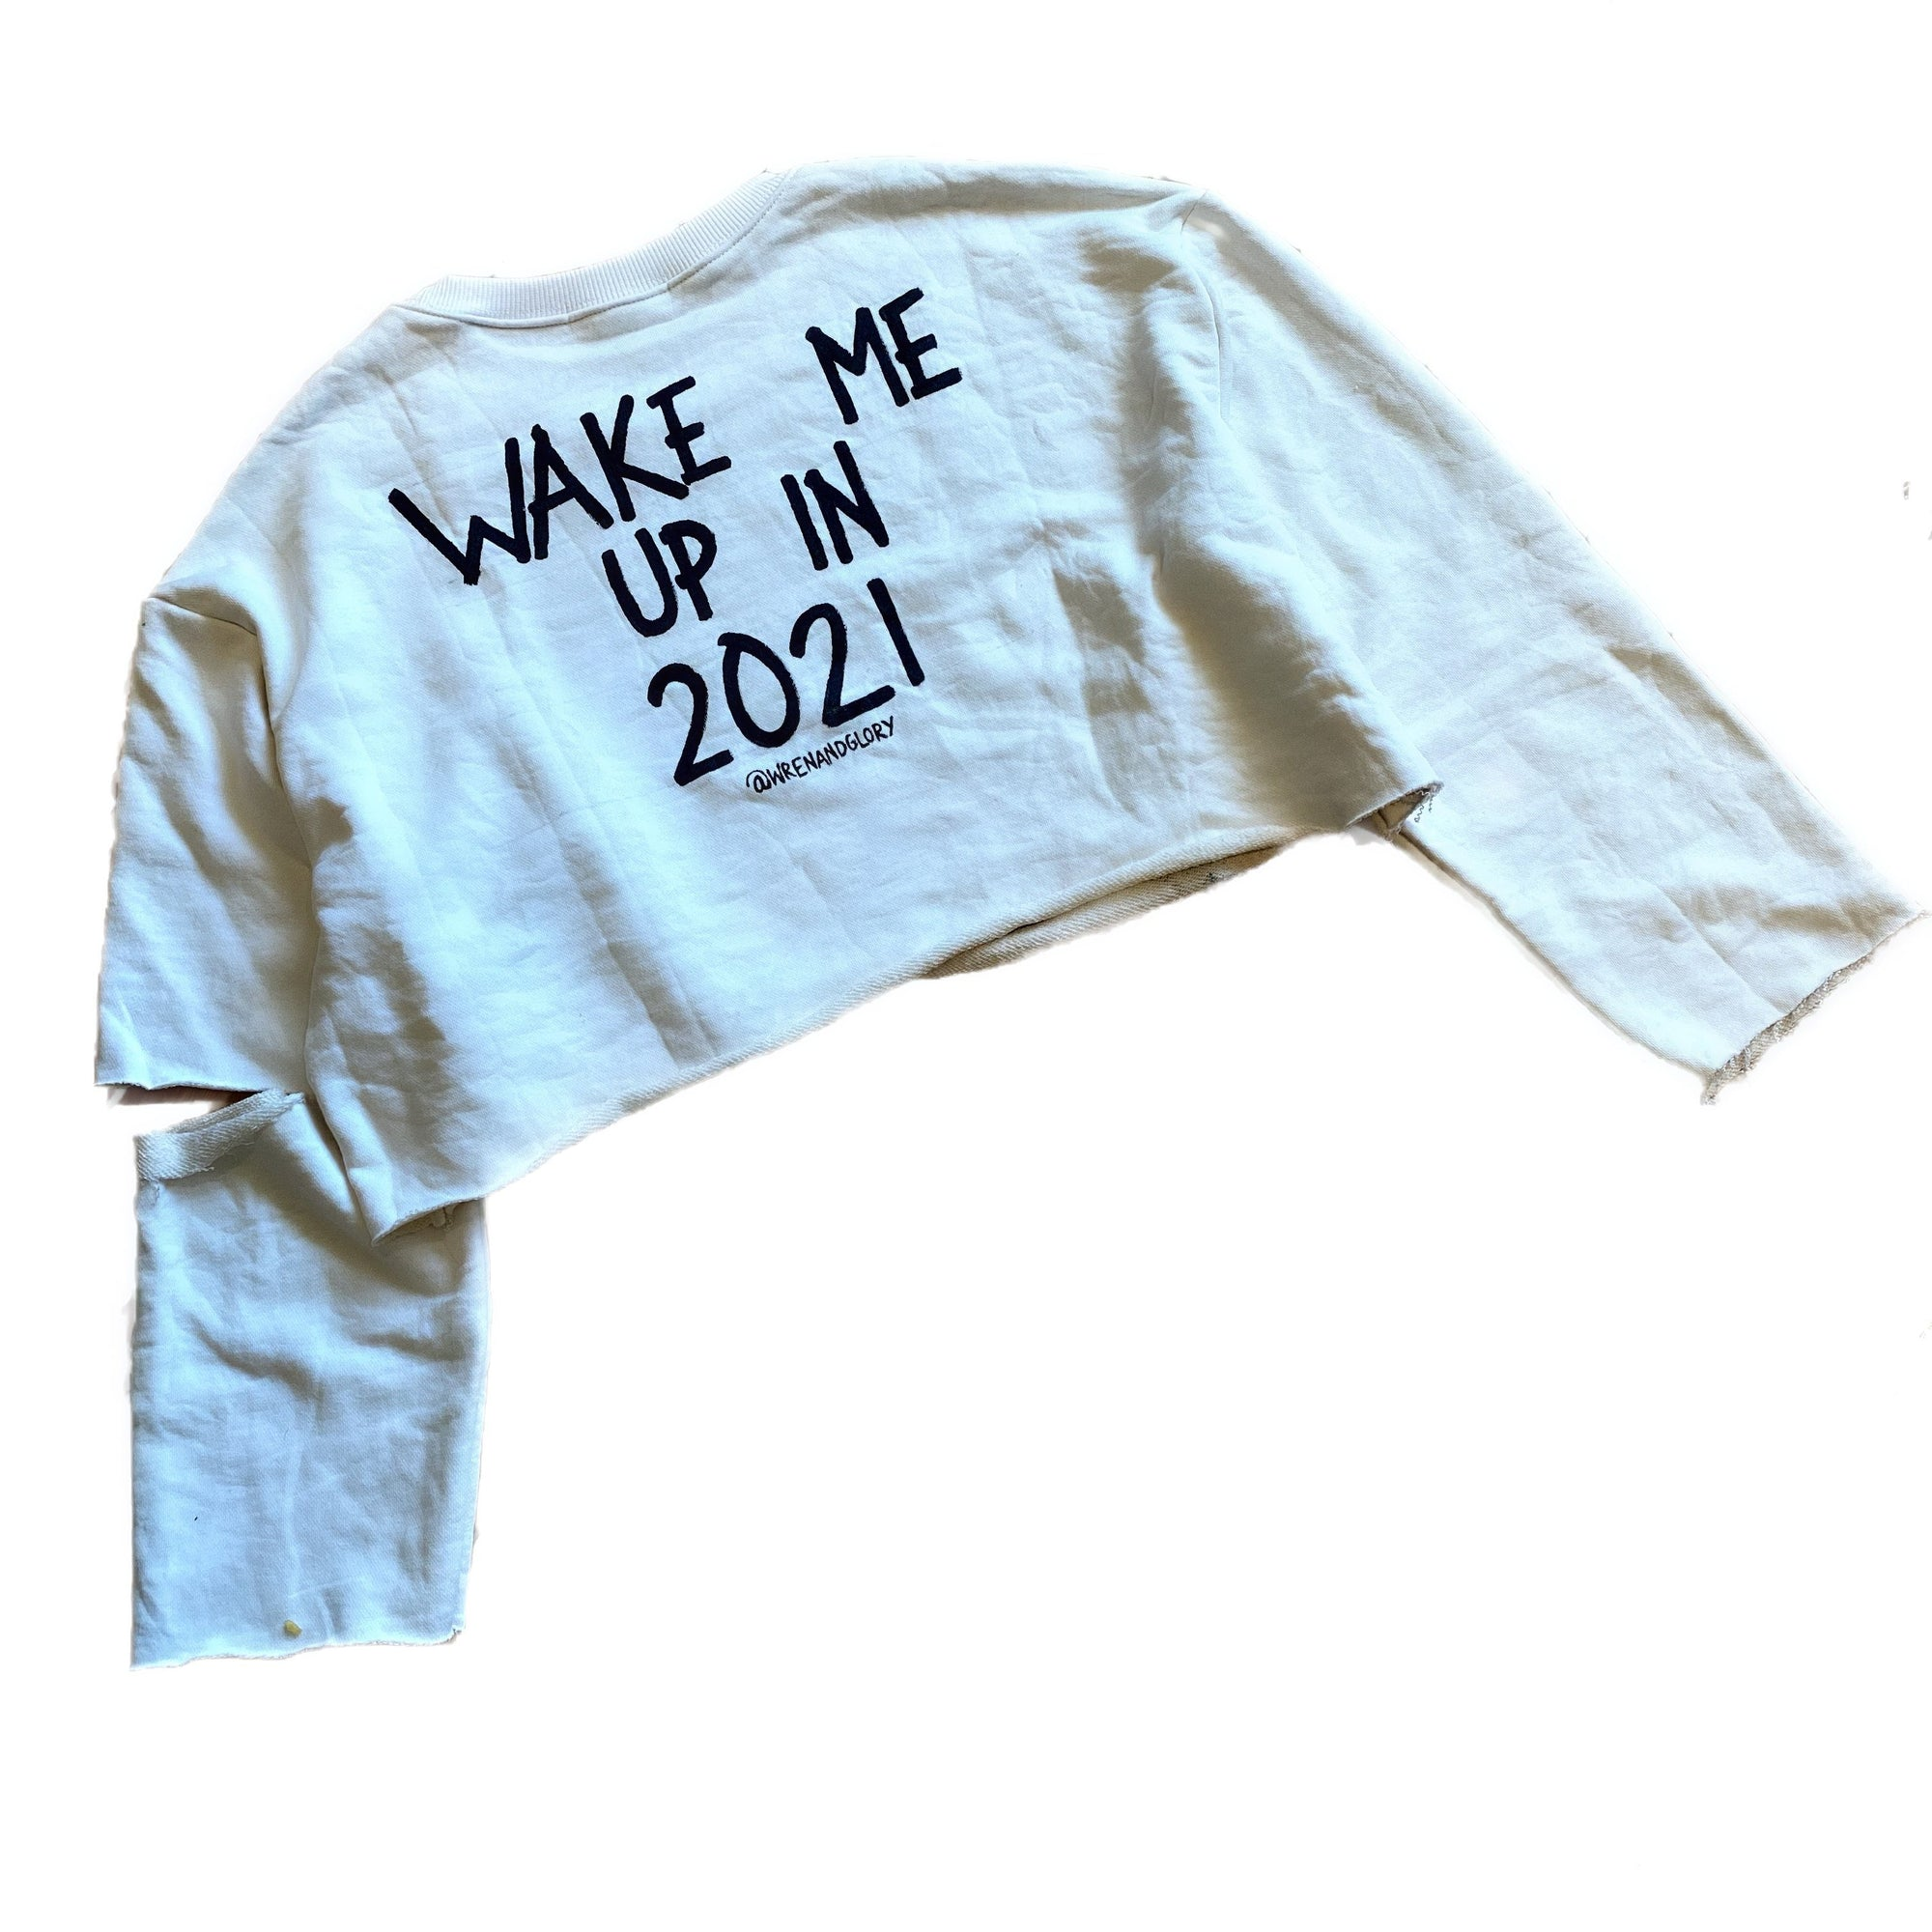 'IS IT 2021 YET' PAINTED SWEATSHIRT